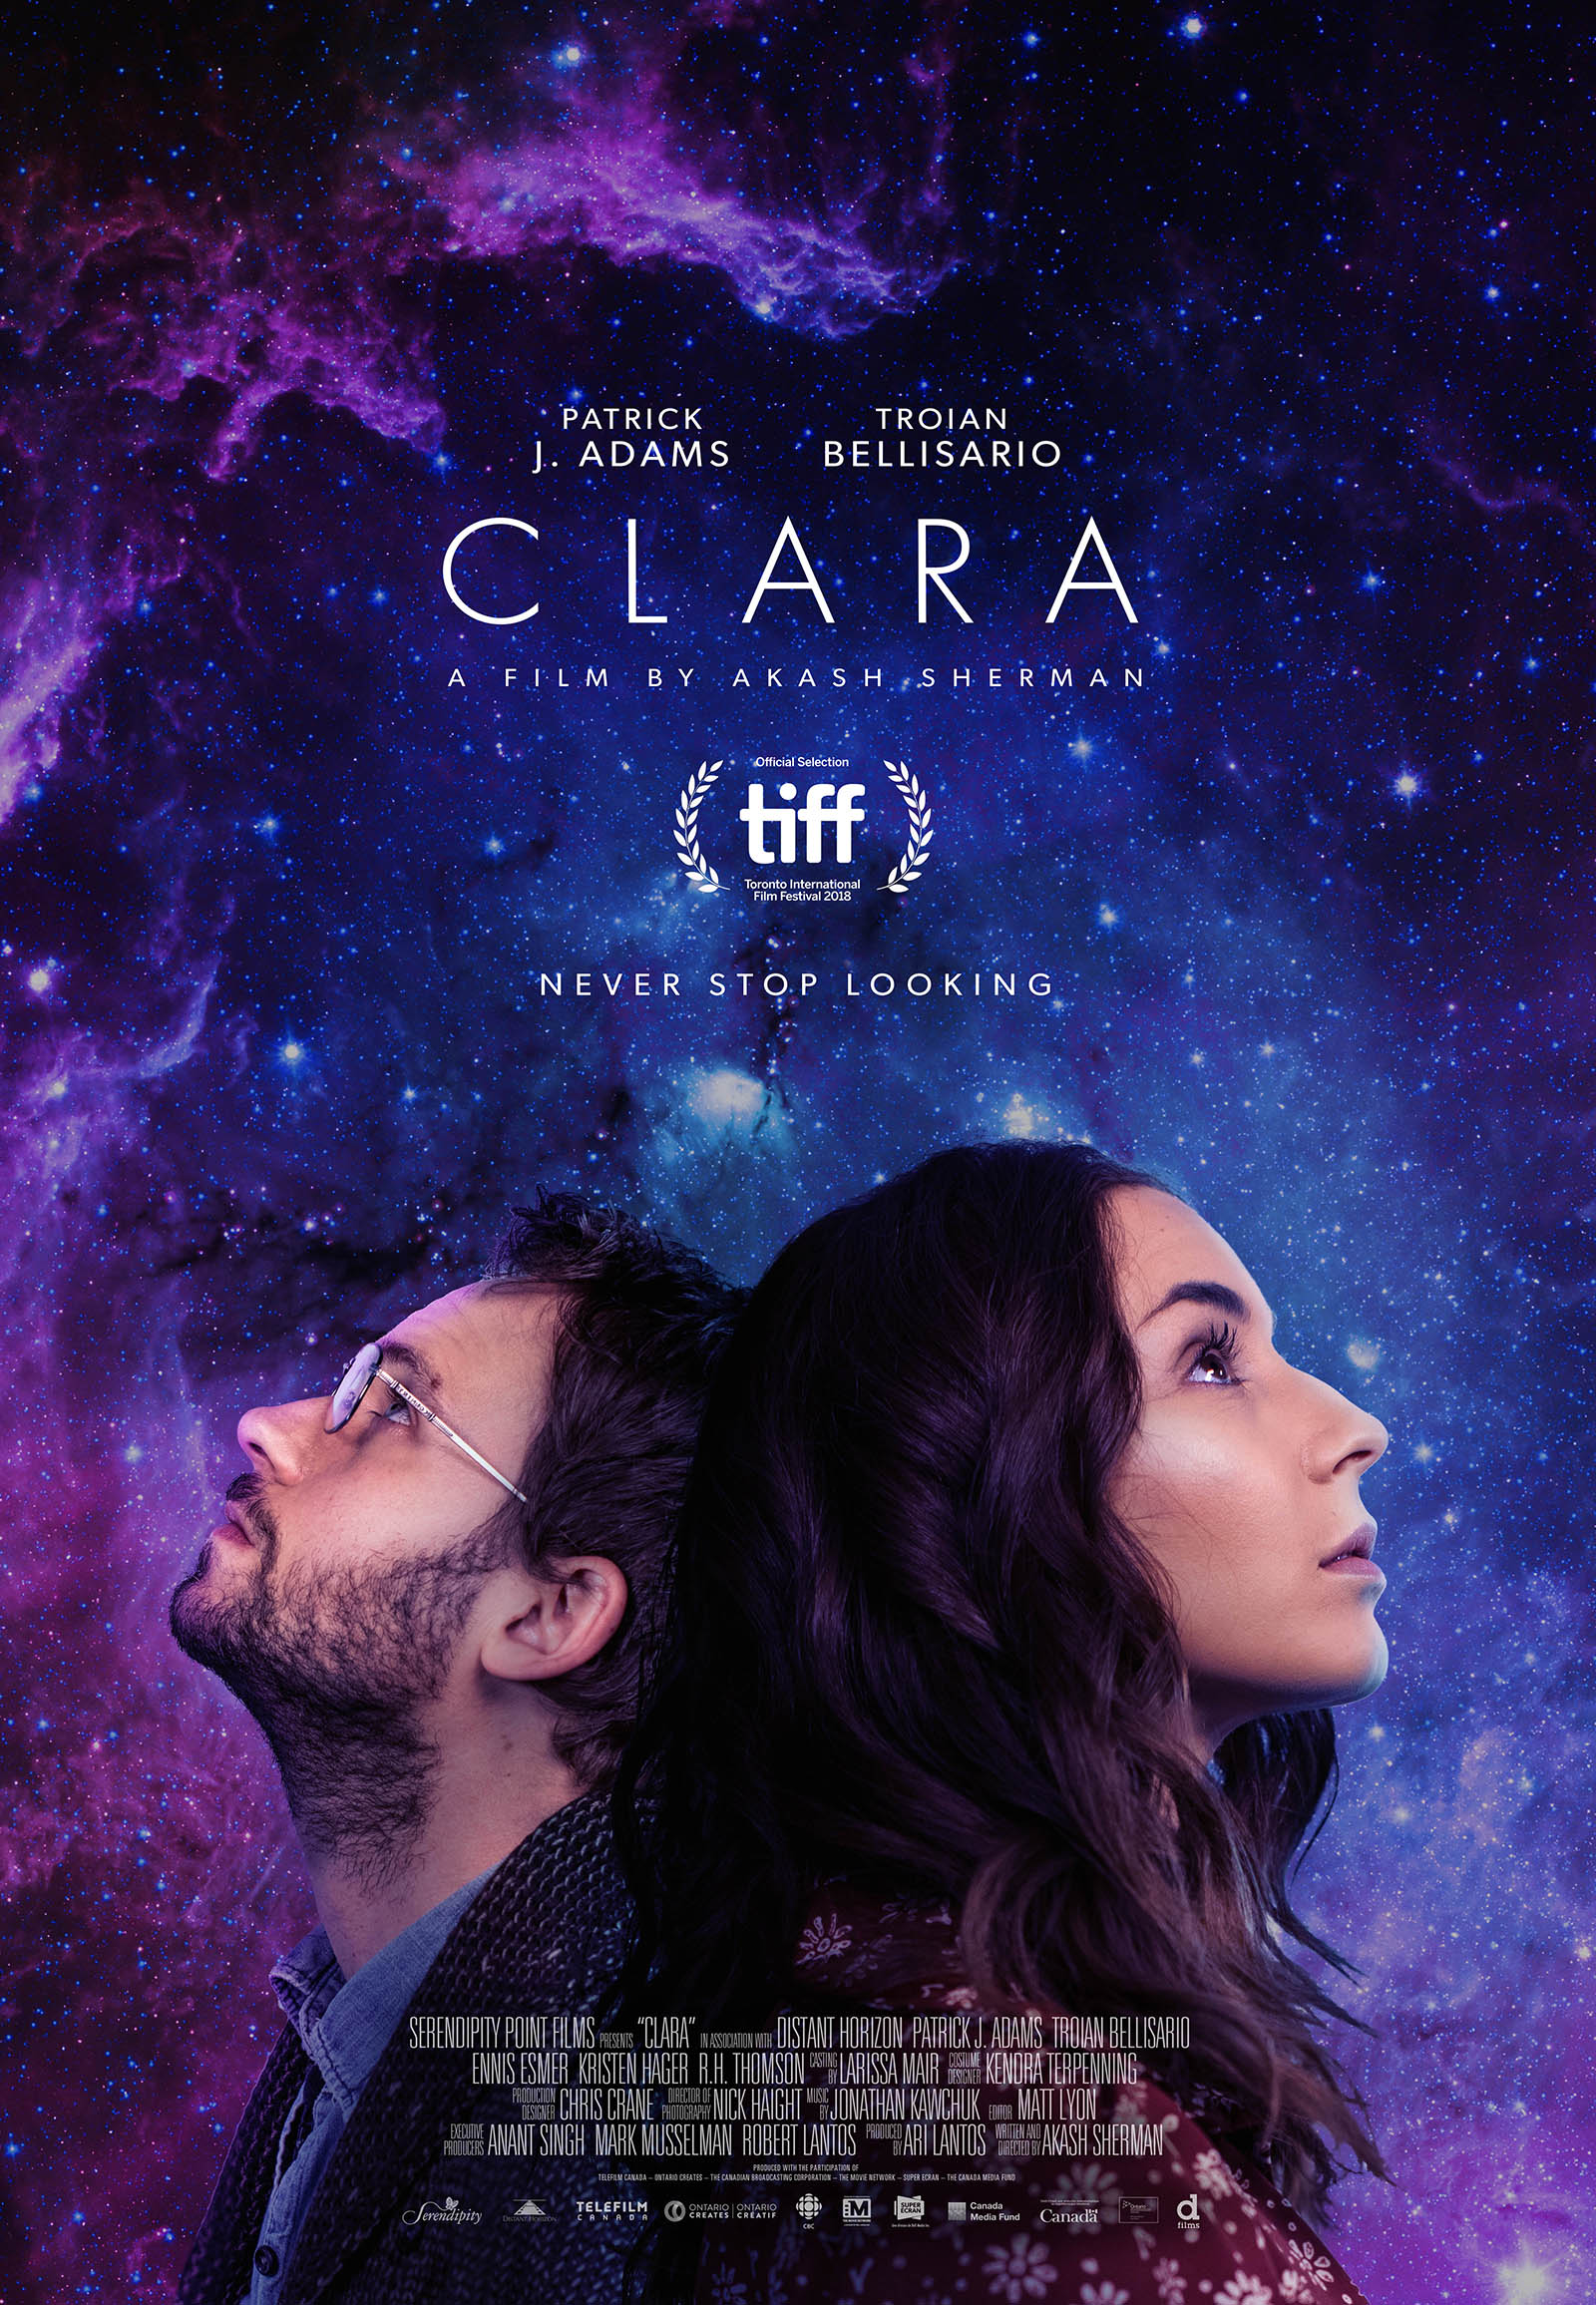 Poster for the film Clara